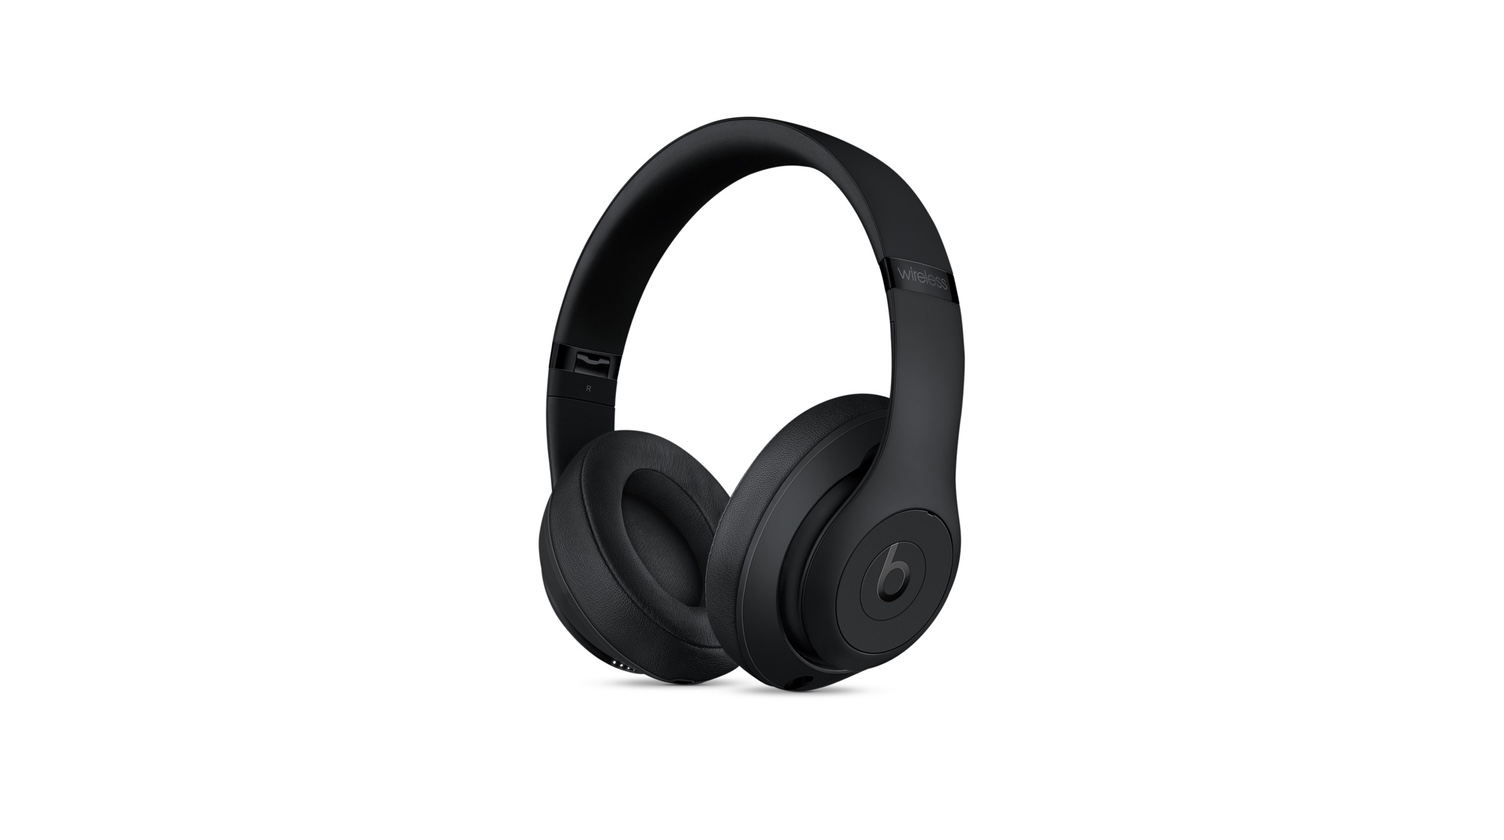 be2441f5afd Apple Introduces New Wireless, Noise-Cancelling Beats Studio3 Headphones